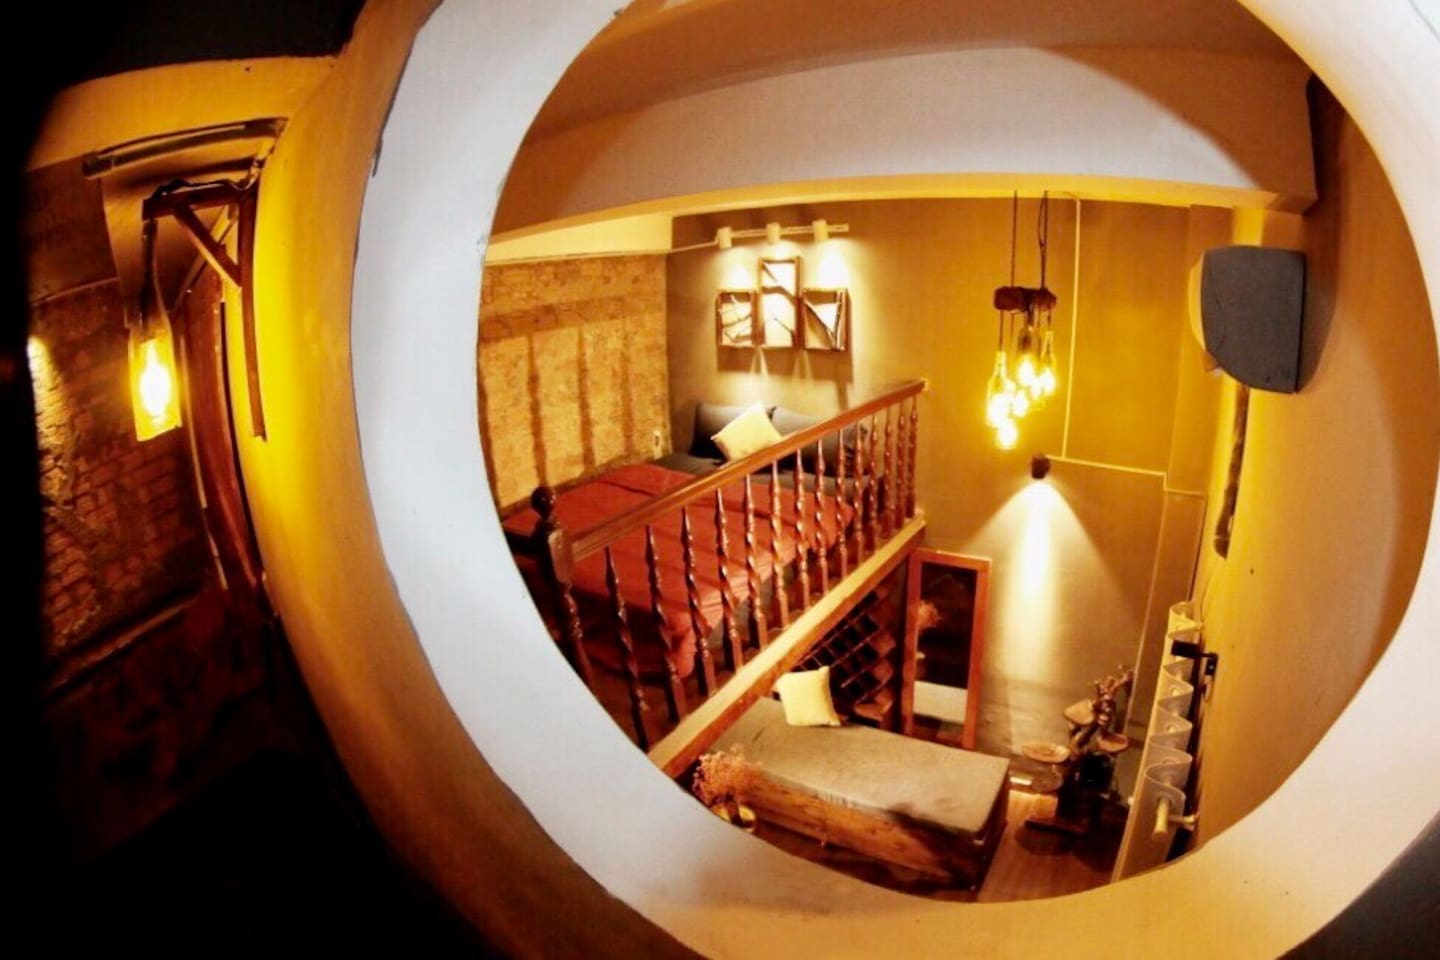 The house is designed in artificial and woody style, inspired by wine cellars and the taste of Vino. Come in to the house, our dear guests will have the feeling of getting lost in a huge wine cellar, enjoying music from Bluetooth speaker and wine.